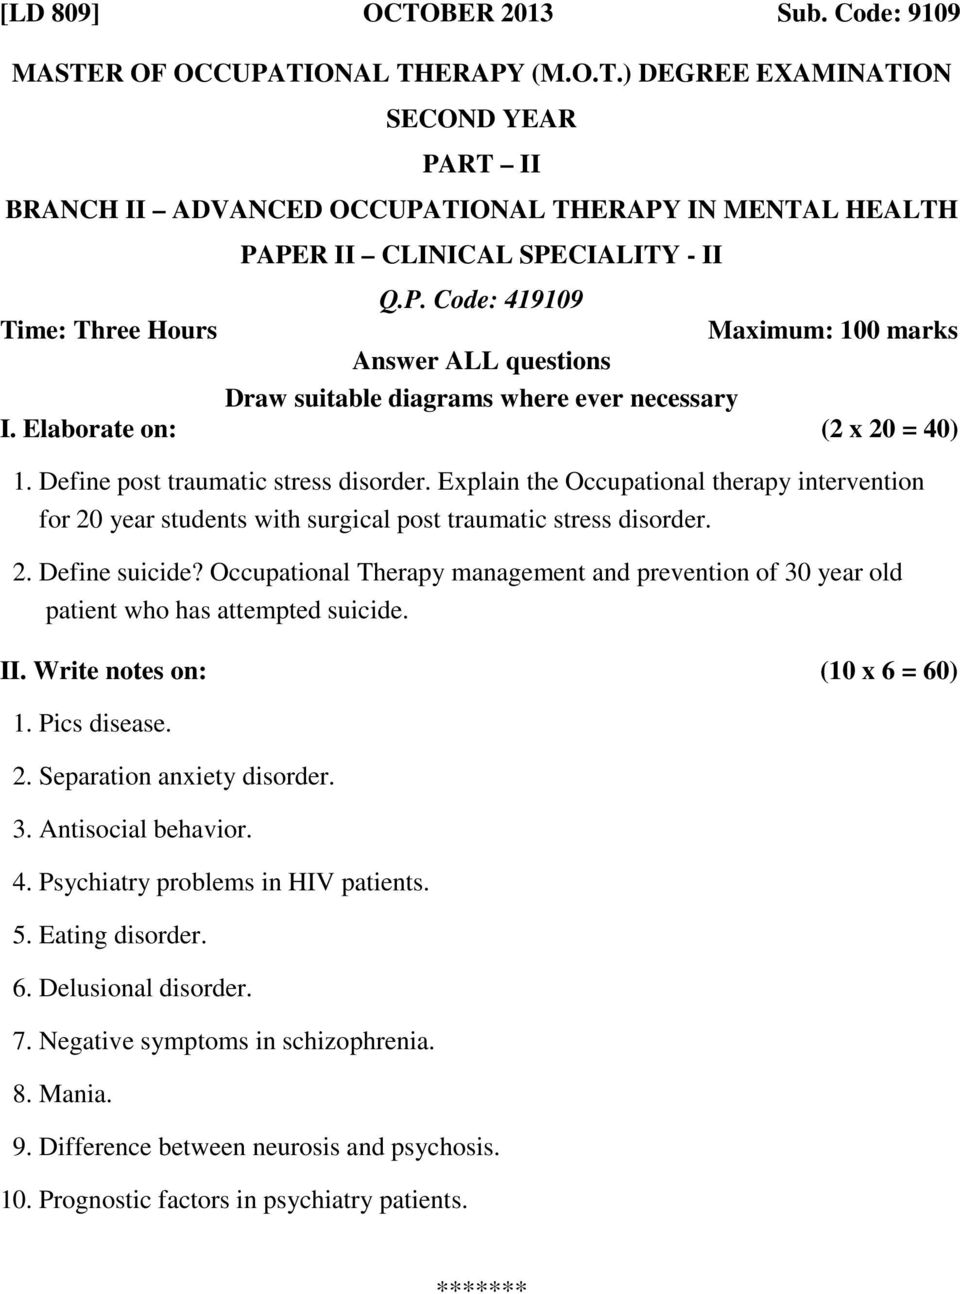 Occupational Therapy management and prevention of 30 year old patient who has attempted suicide. 1. Pics disease. 2. Separation anxiety disorder. 3. Antisocial behavior.